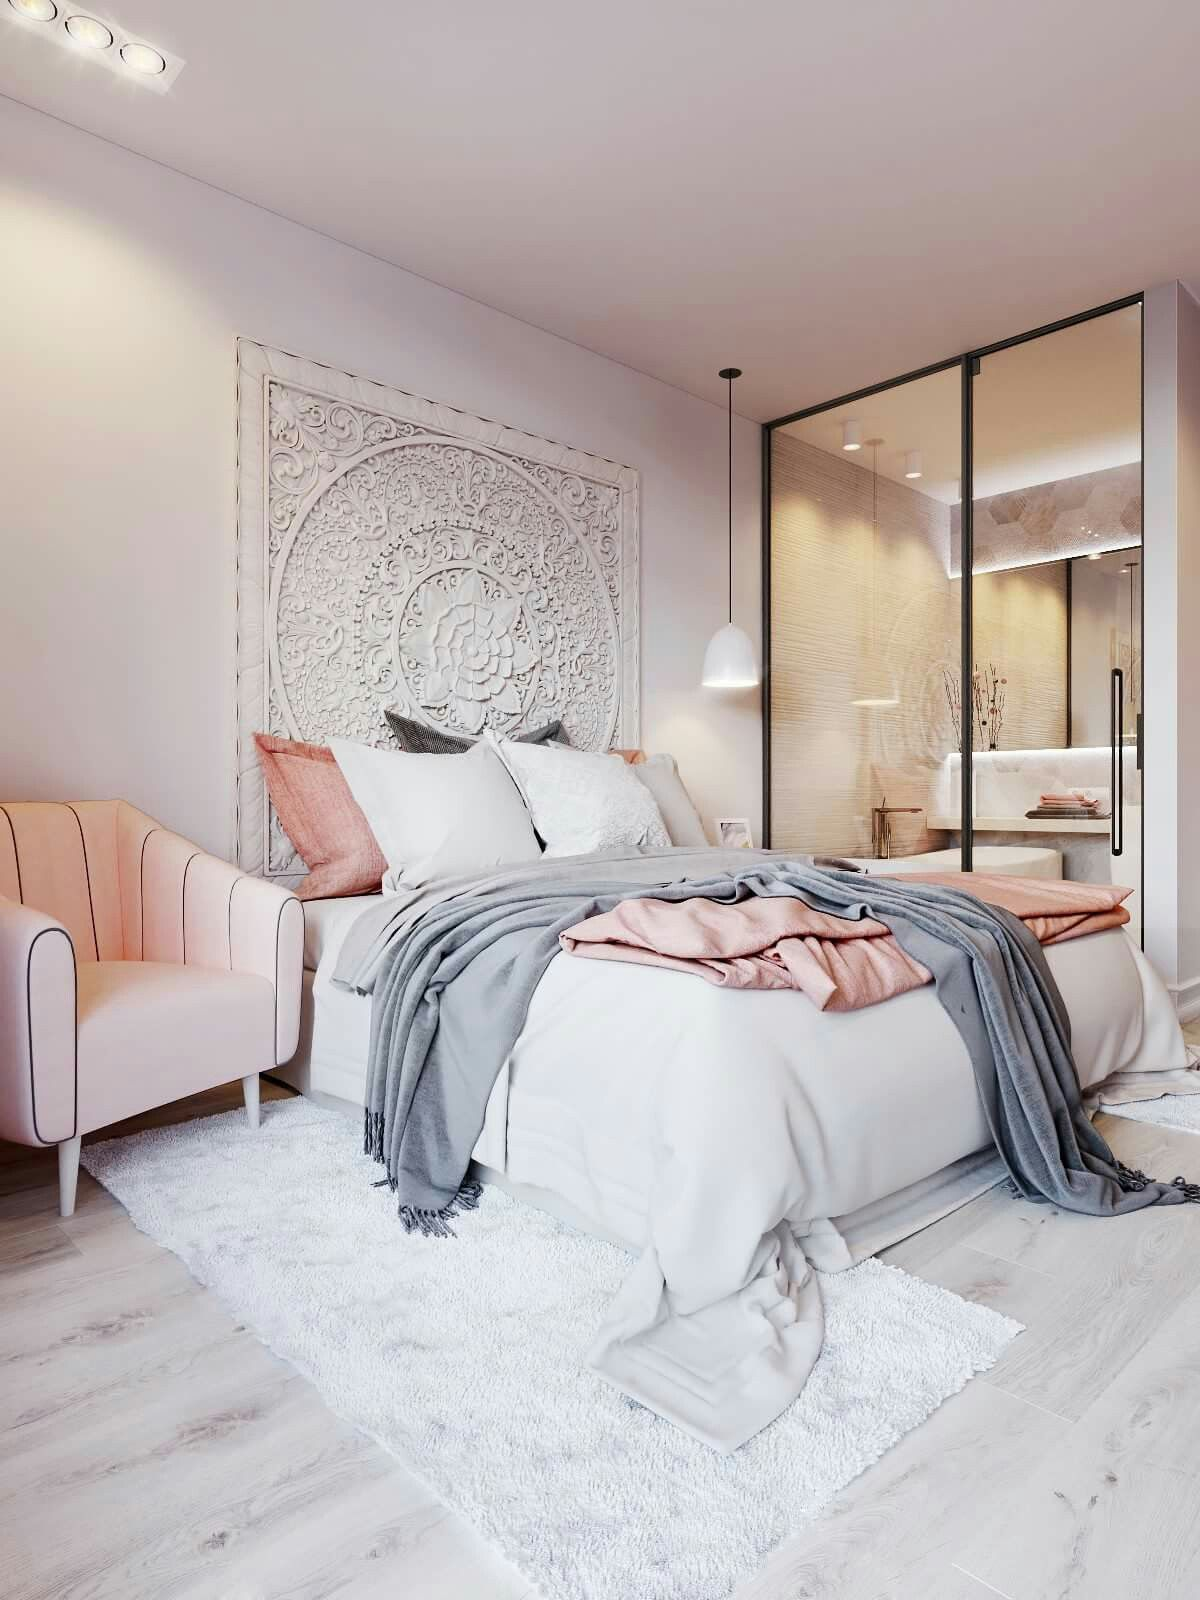 Future house also pinterest angelita ideas bedrooms room and rh